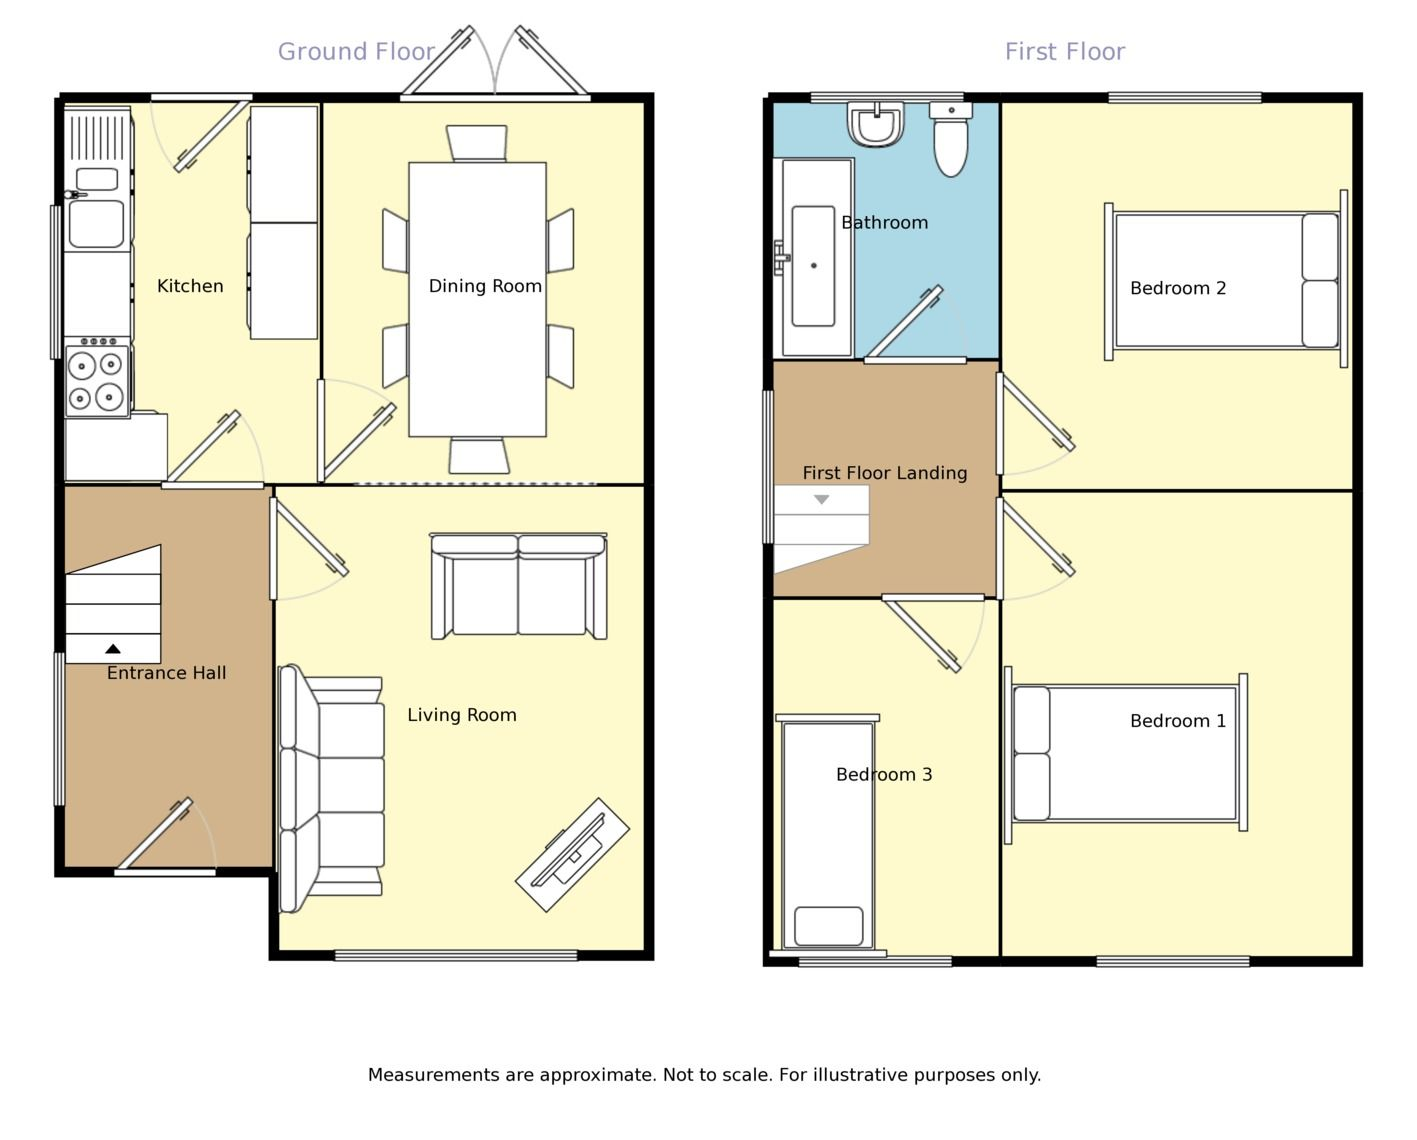 3 Bedroom Houses For Sale In Leeds Your Move